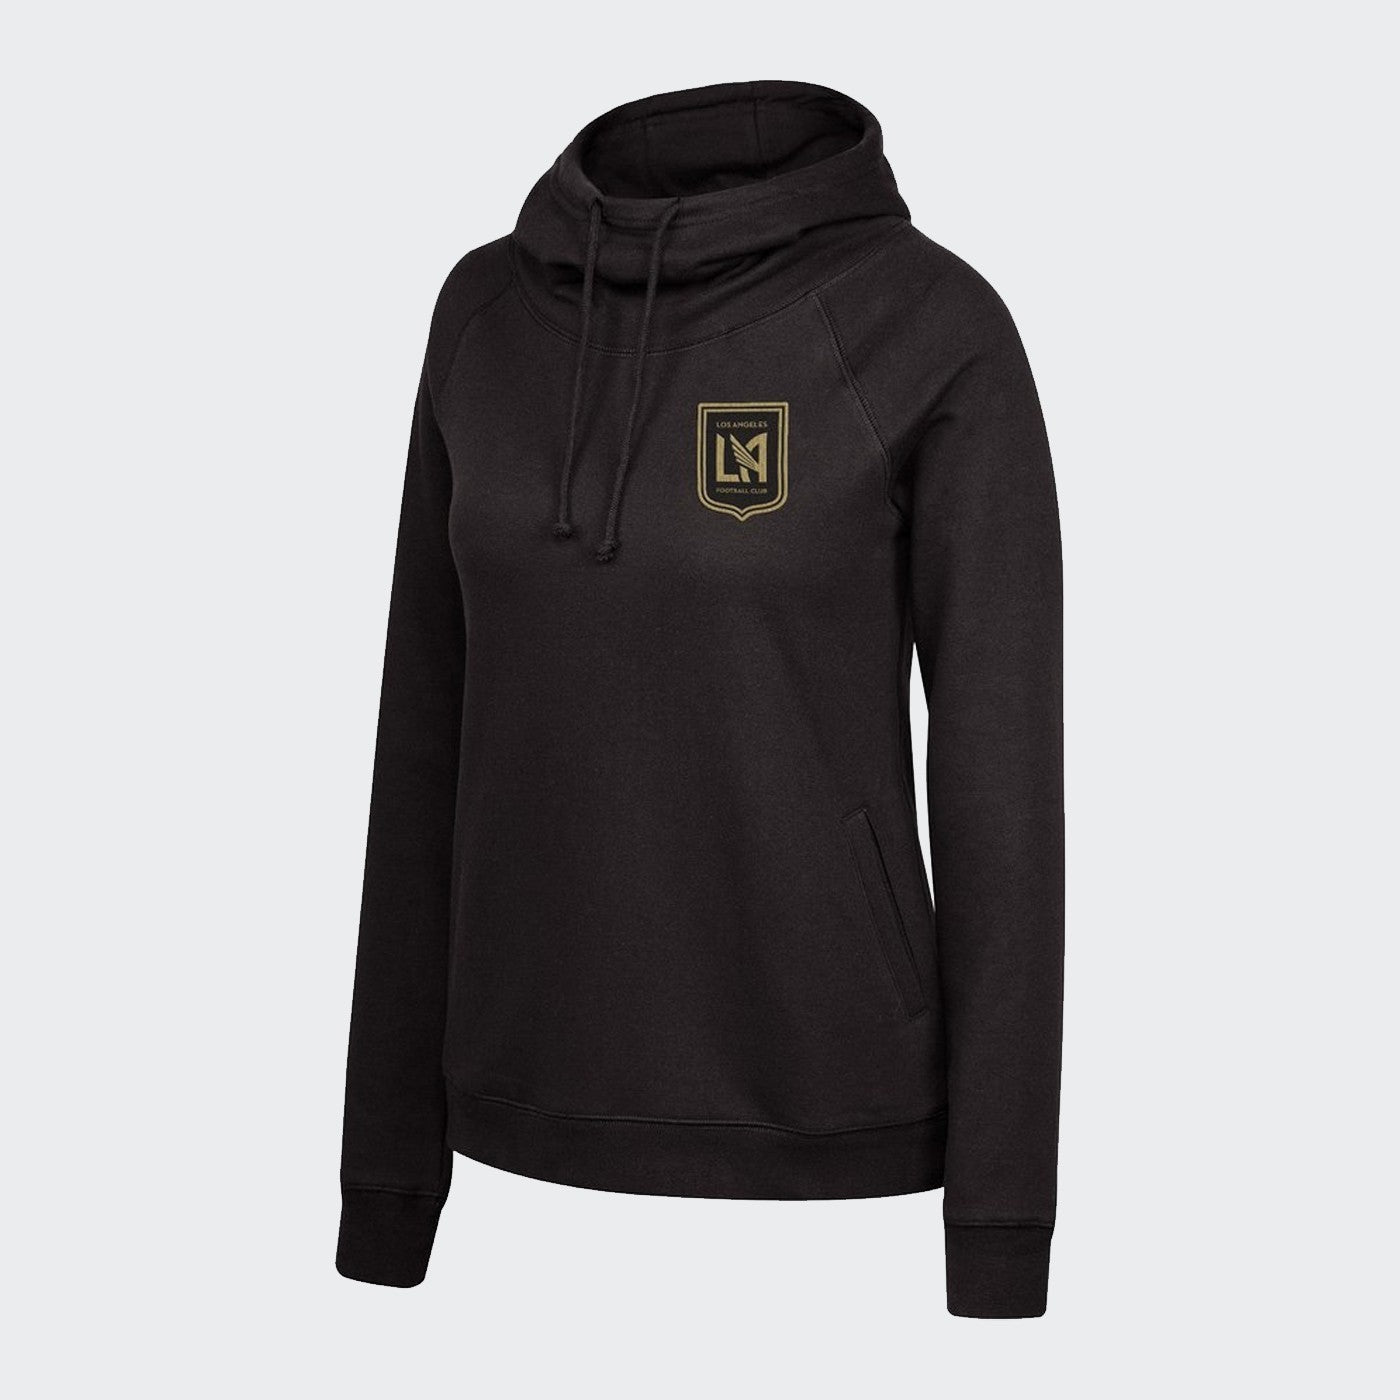 Women's LAFC Funnel Neck Pullover Hoodie - Black